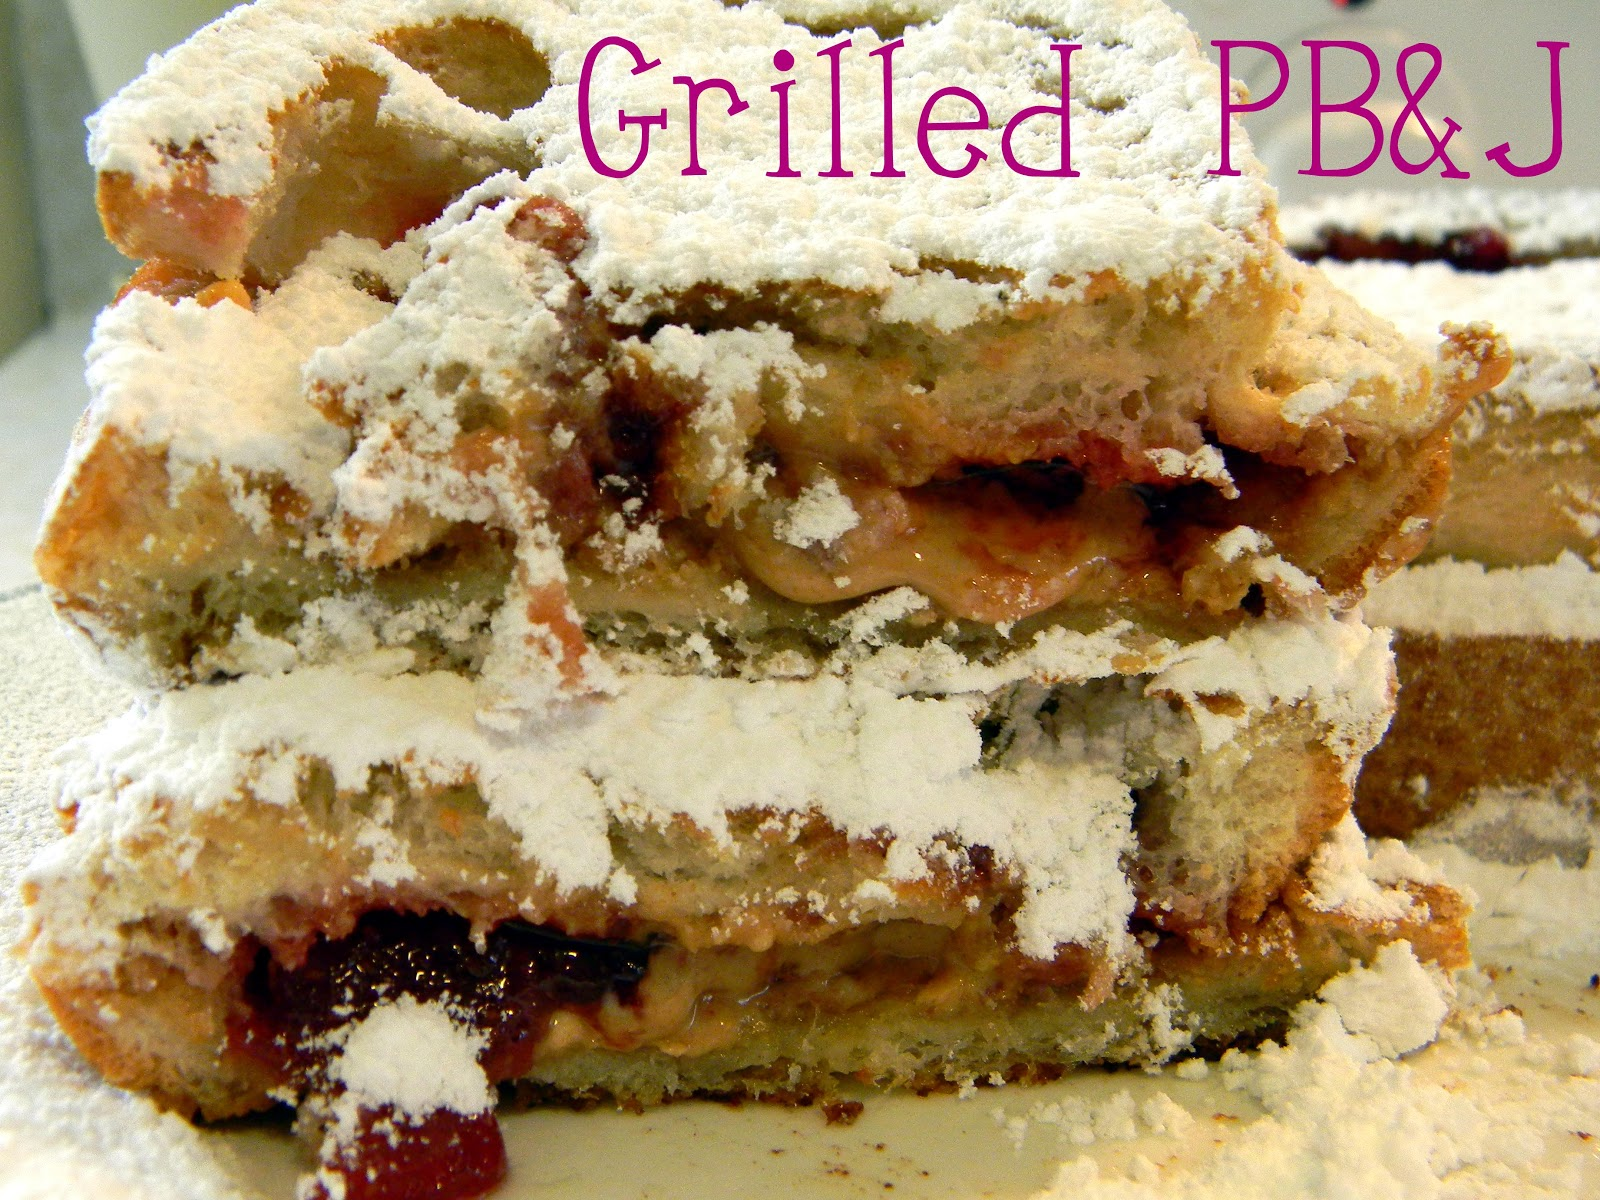 freaked out 'n small: Grilled Peanut Butter and Jelly Sandwich